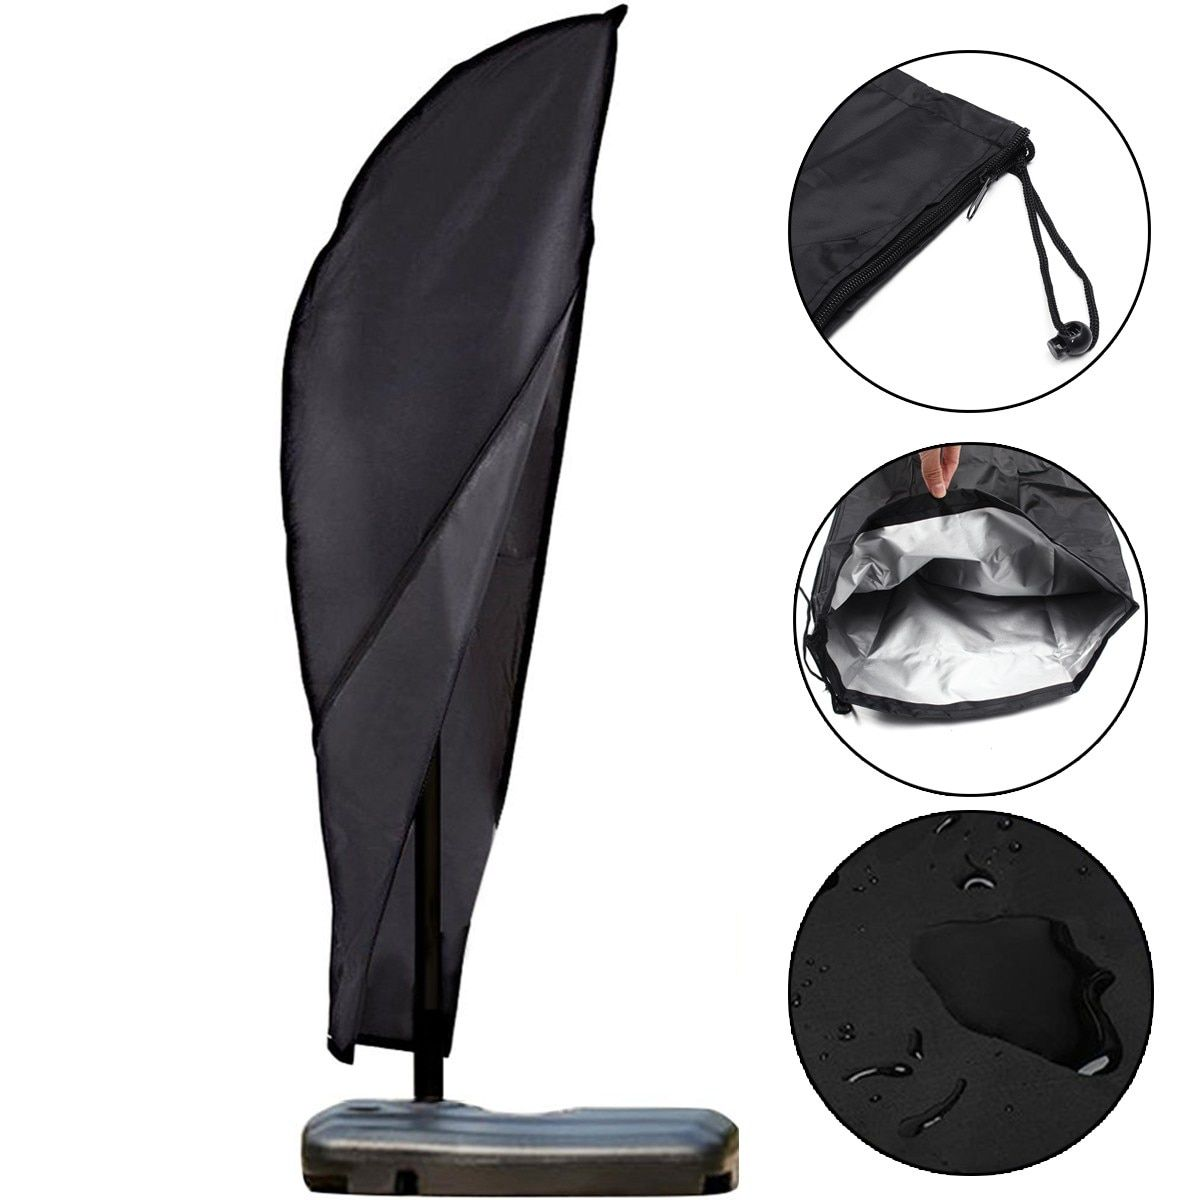 Black Polyester Outdoor Banana Umbrella Cover Canopy Garden Weatherproof Patio Cantilever Parasol Rain Cover Accessories